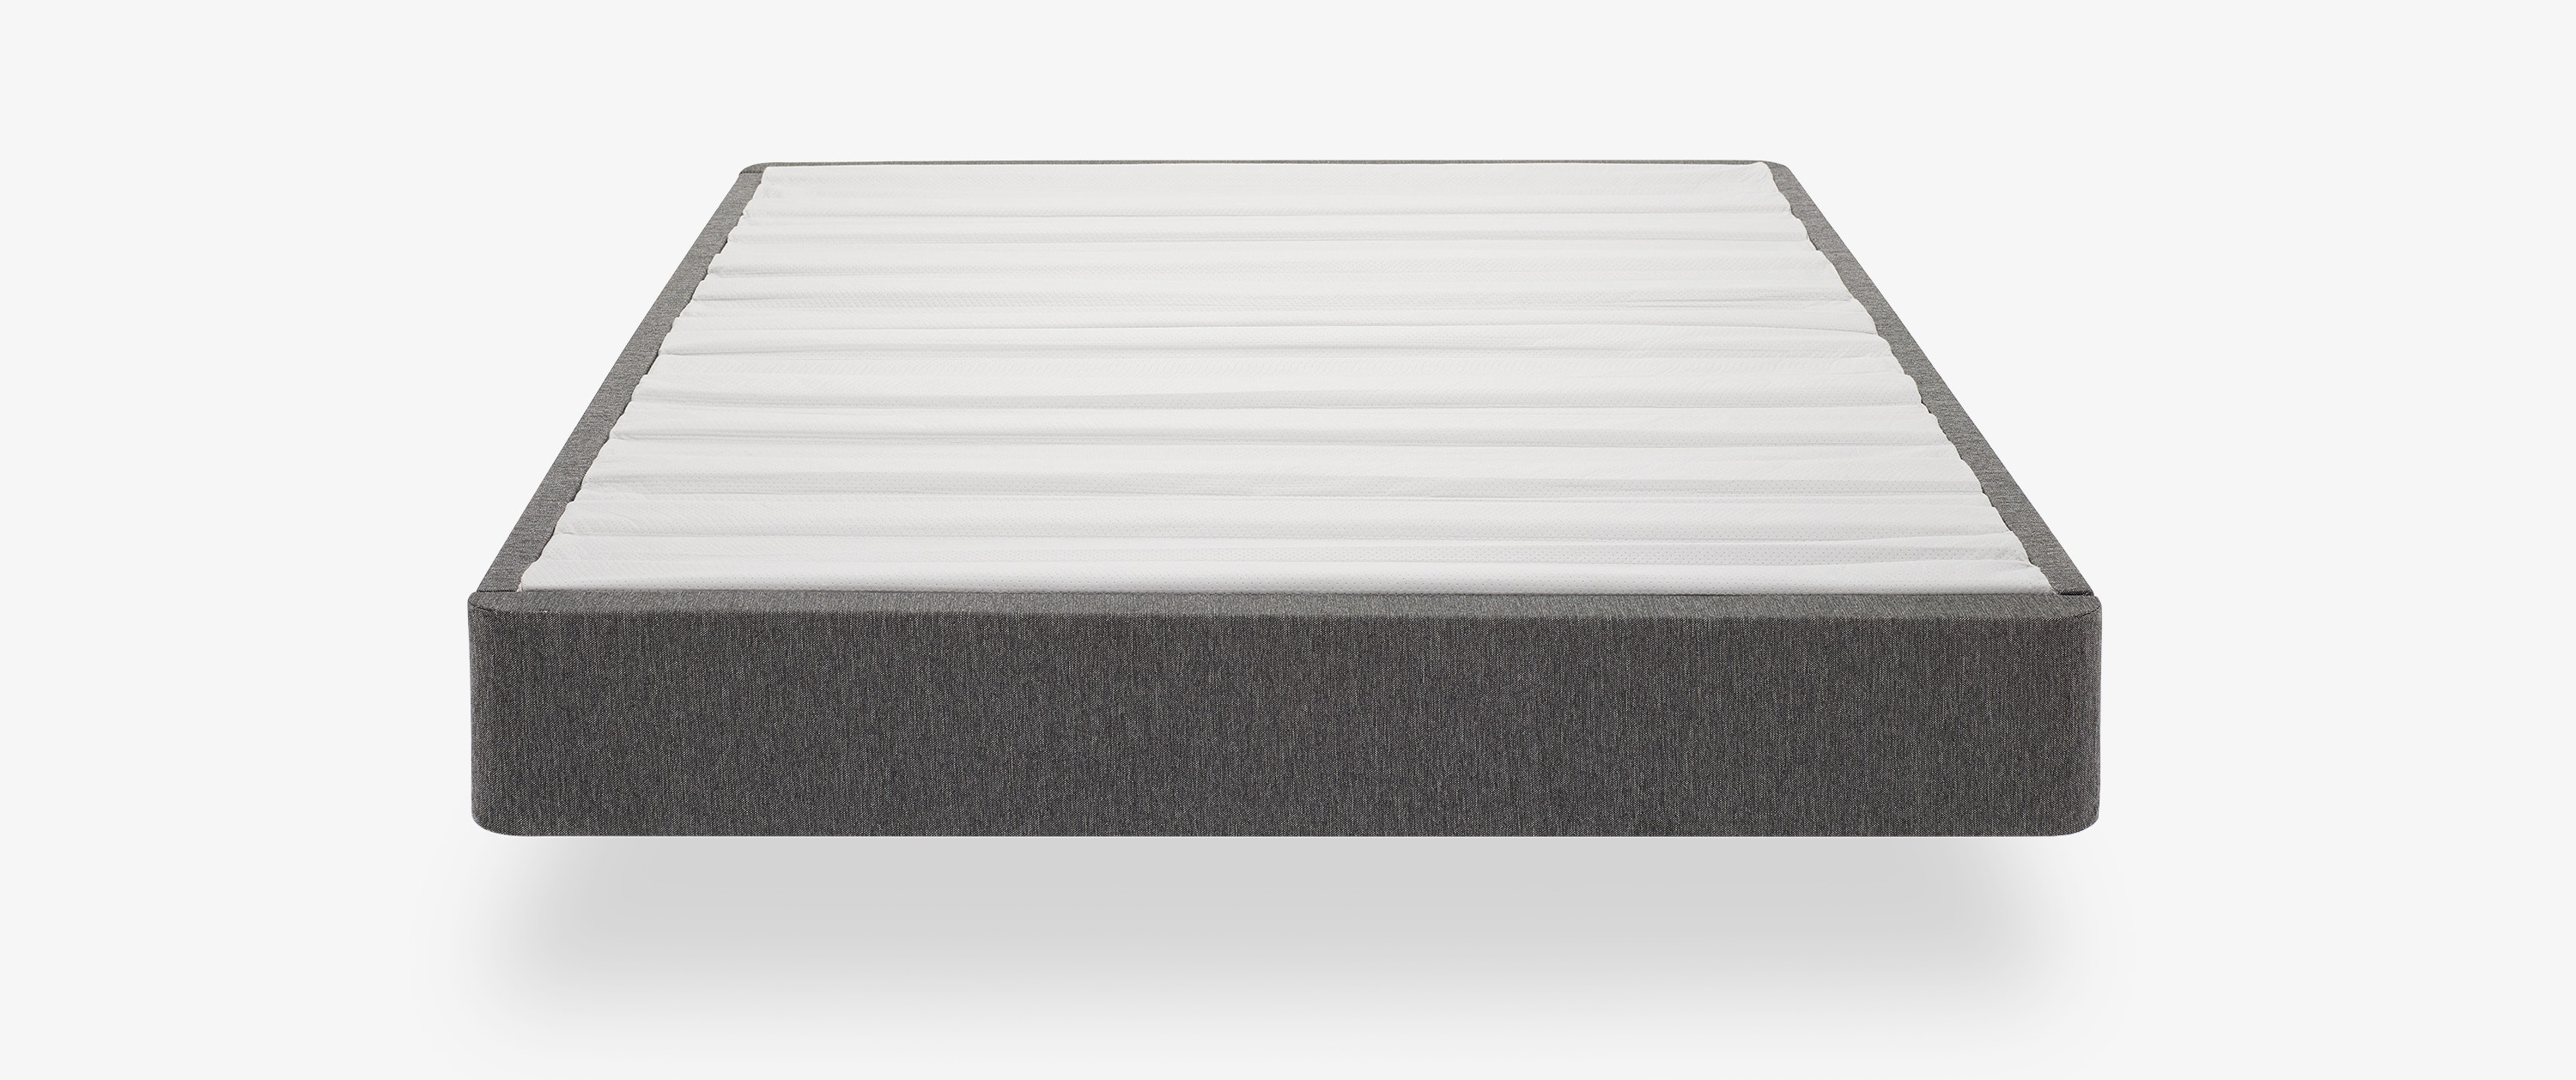 top view of the casper foundation - Box Spring Mattress